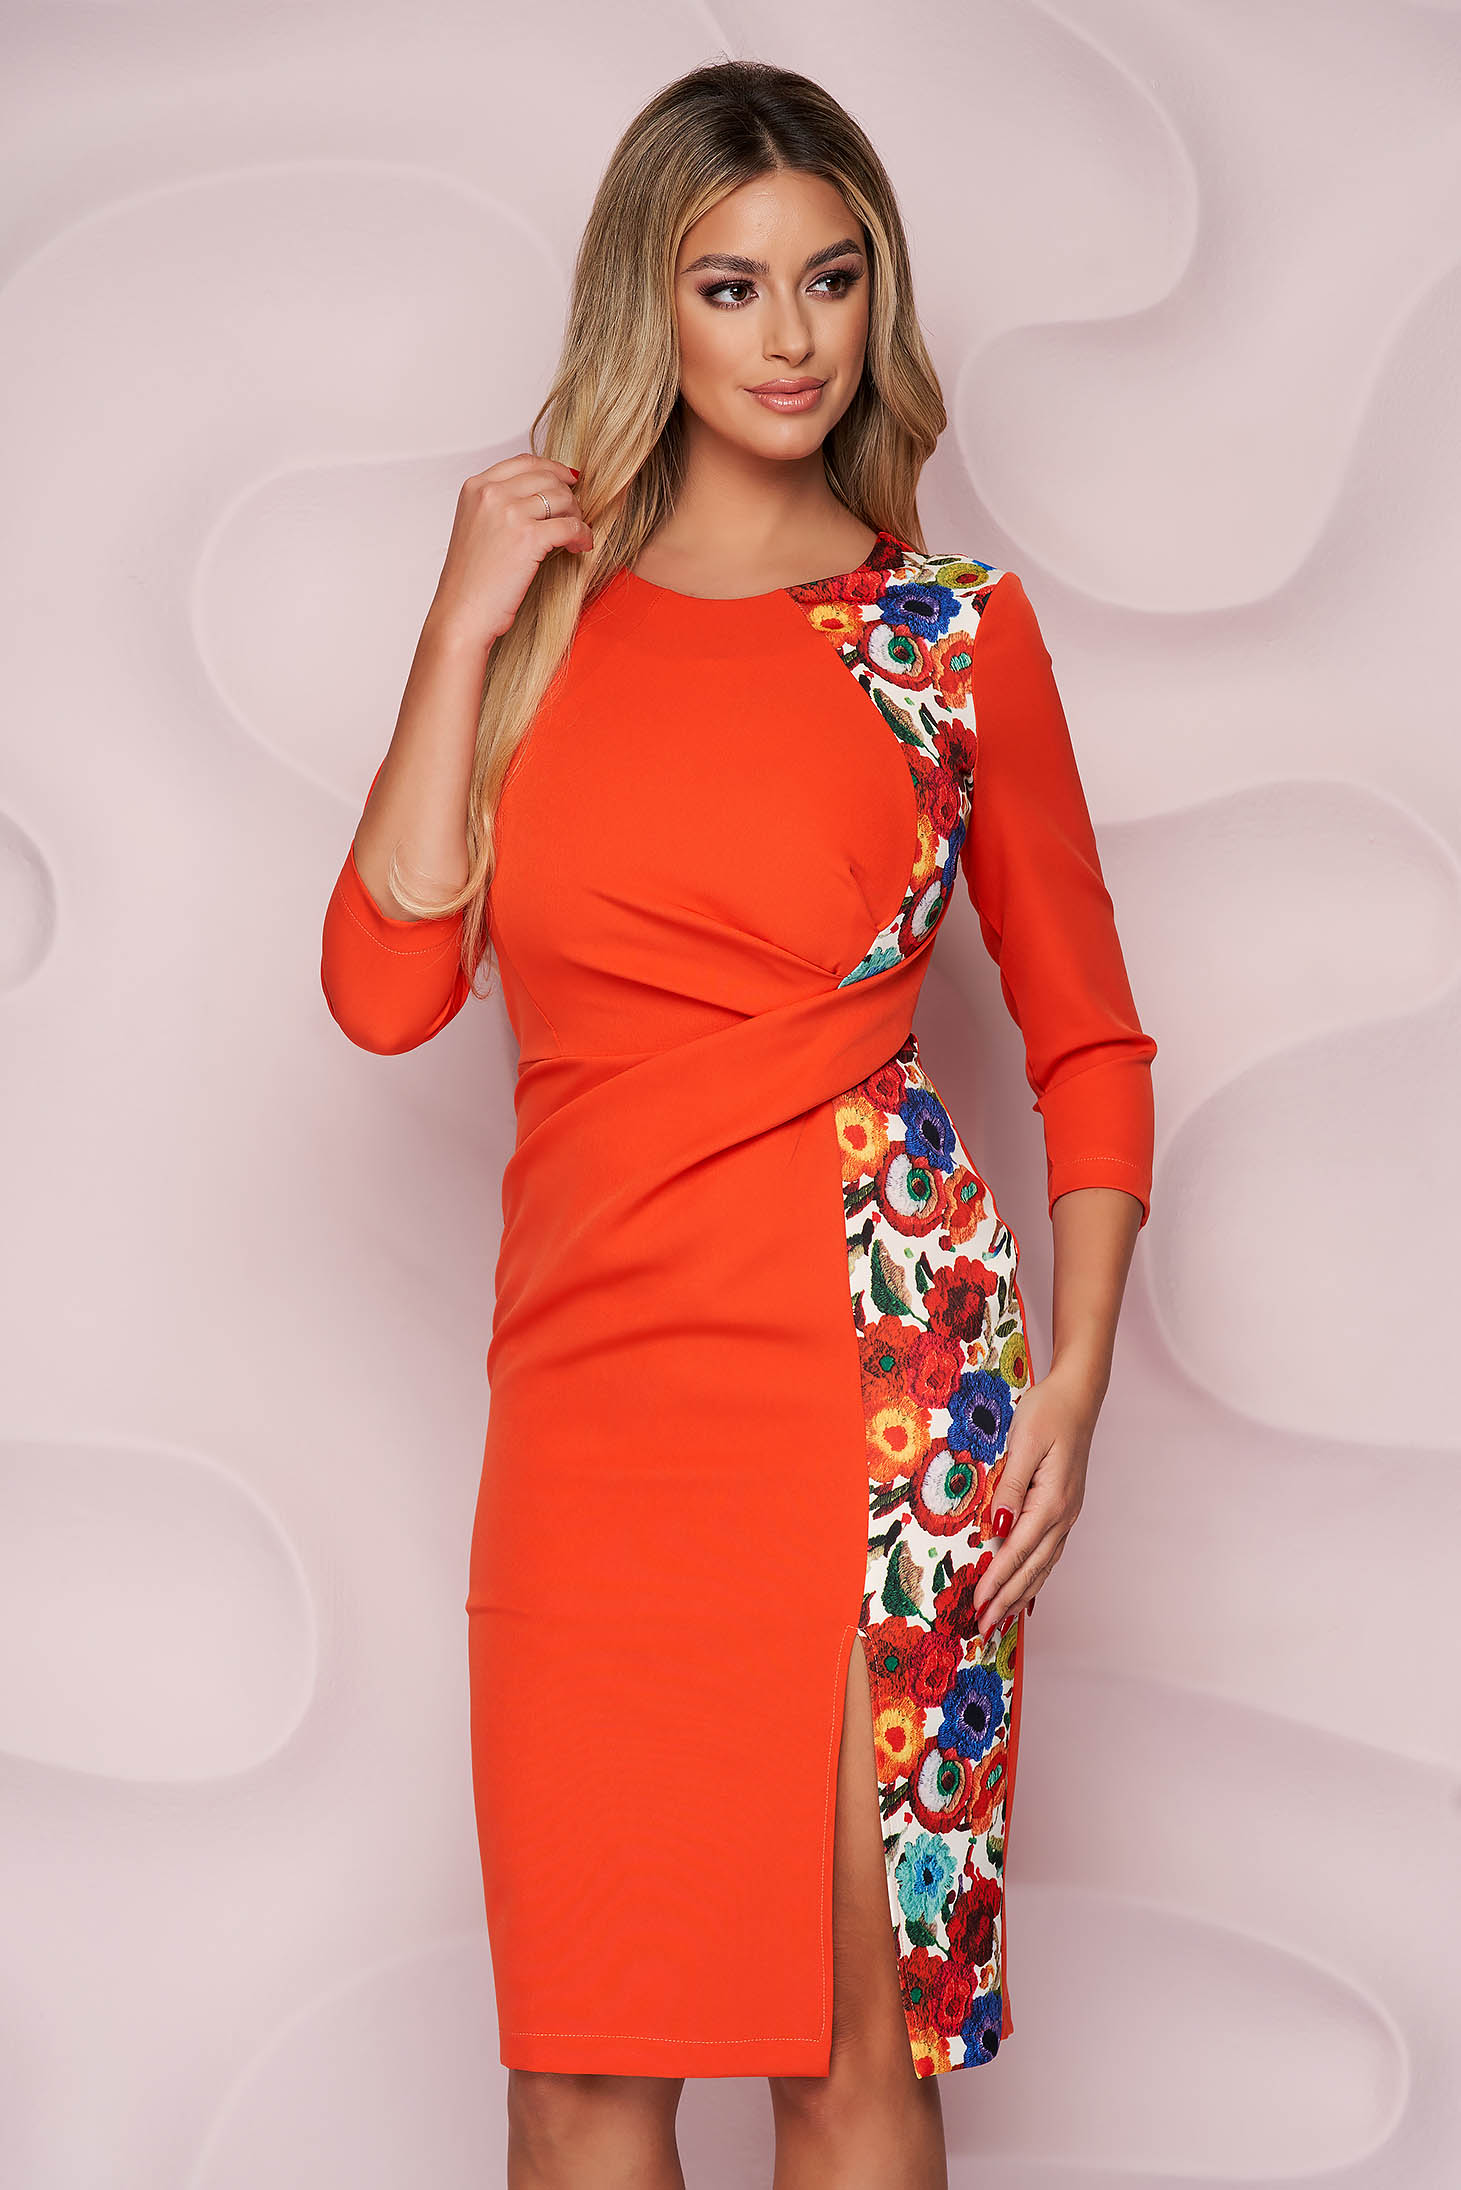 StarShinerS dress office pencil midi nonelastic fabric with floral print light material